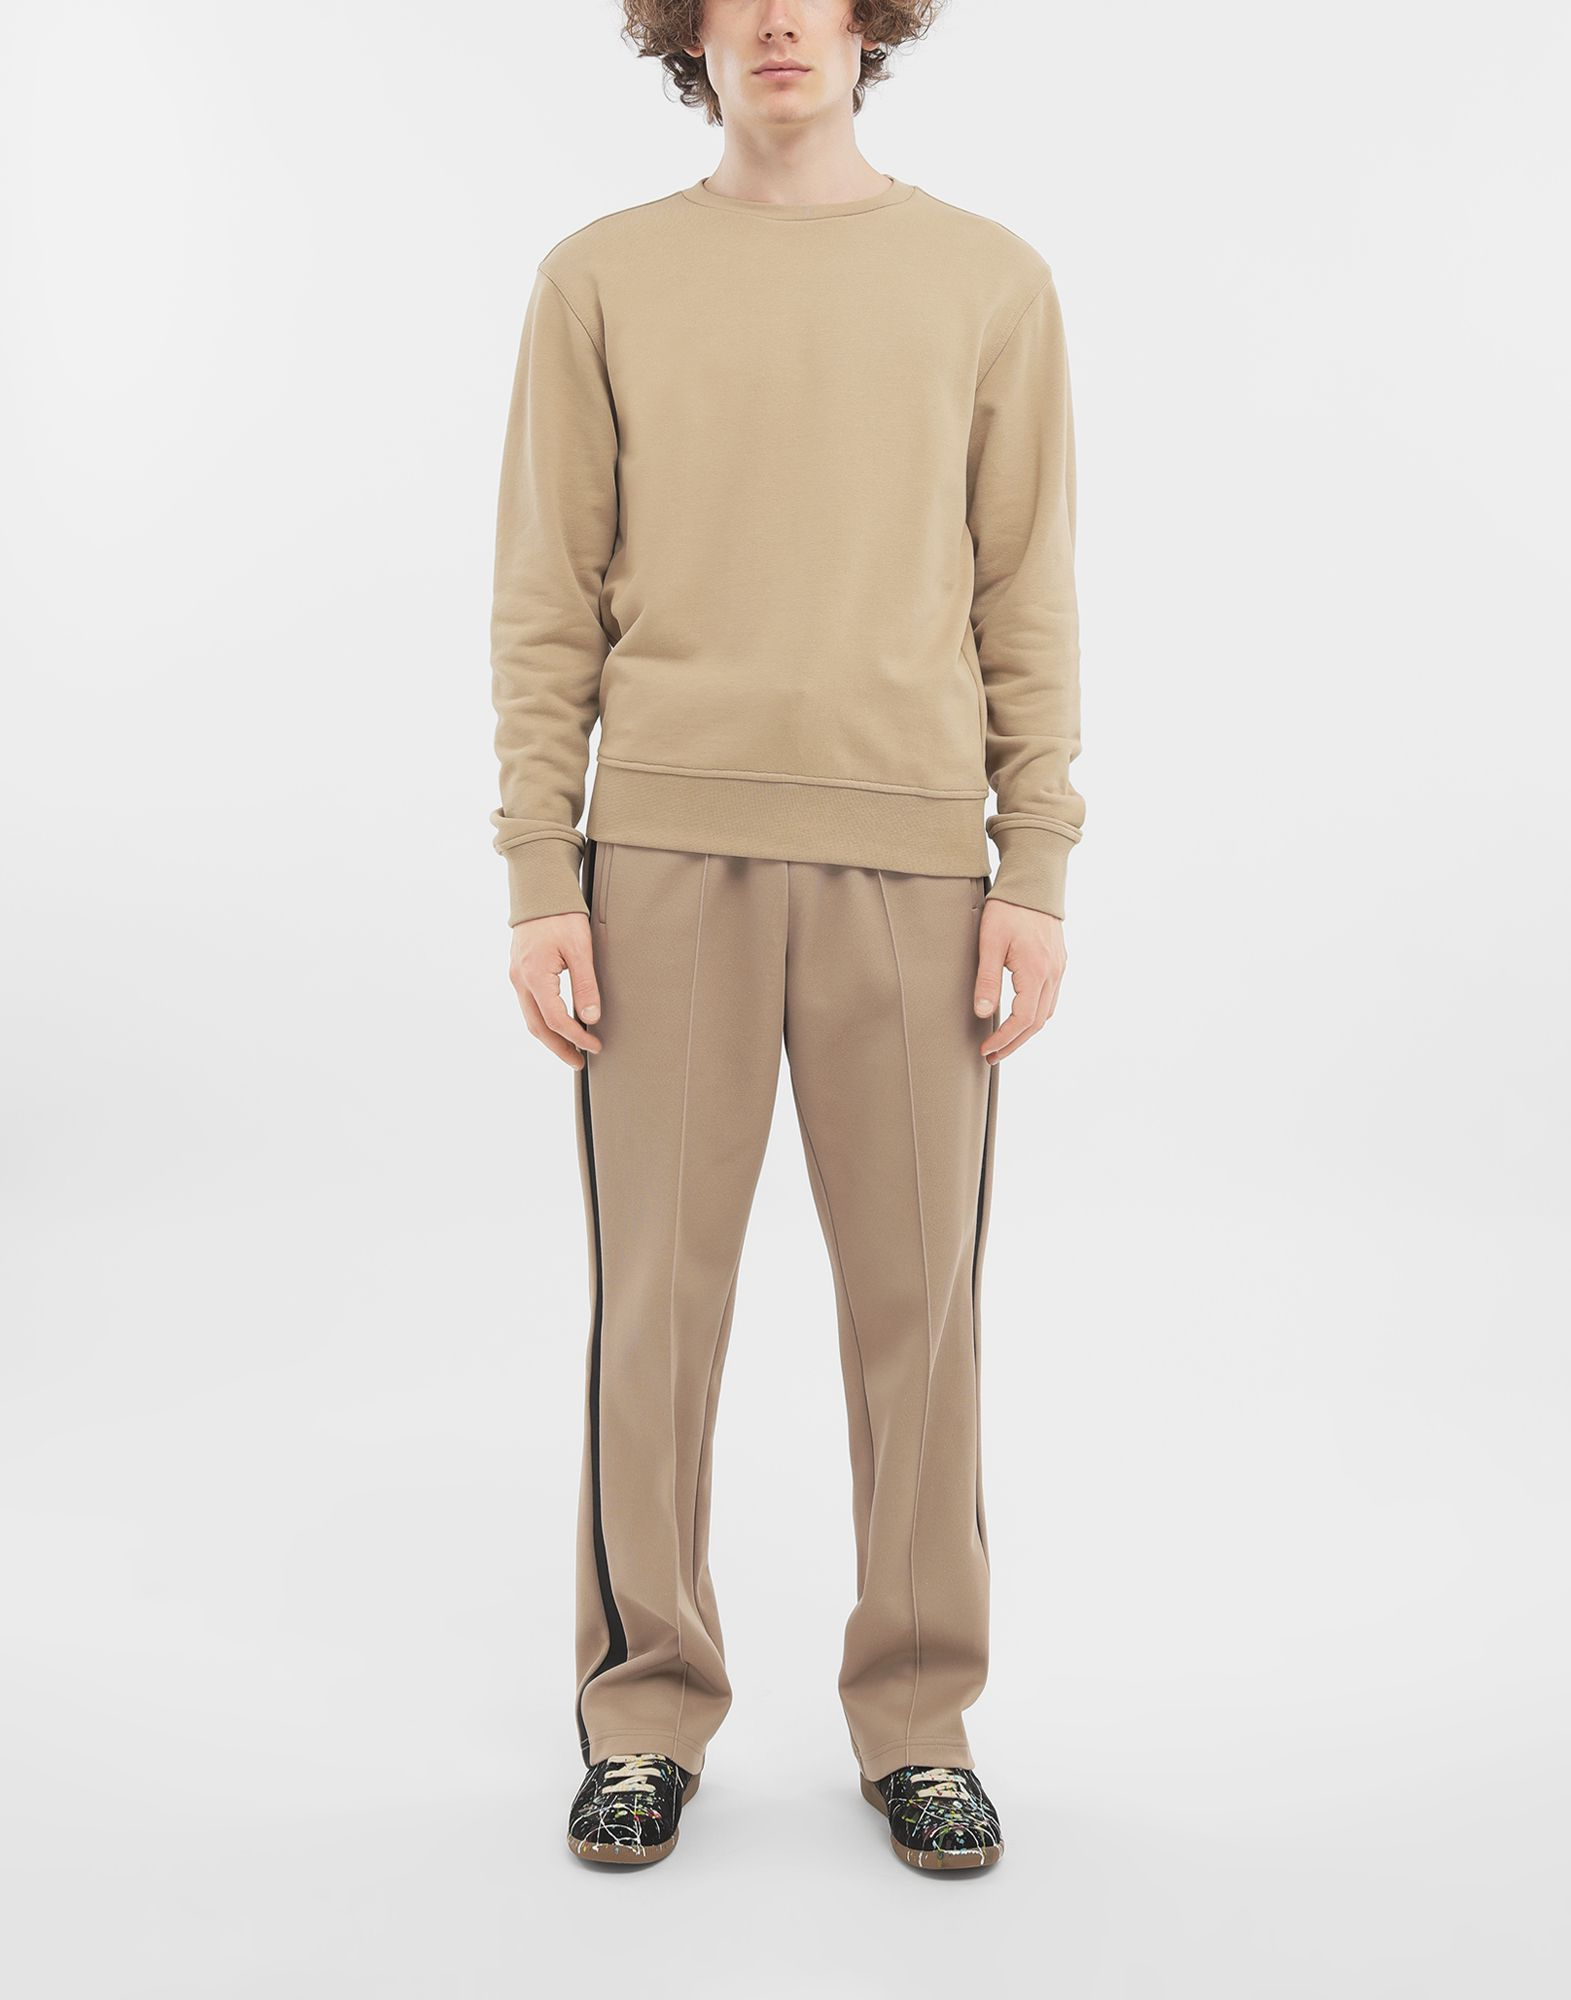 MAISON MARGIELA Cotton pullover Sweatshirt Man d